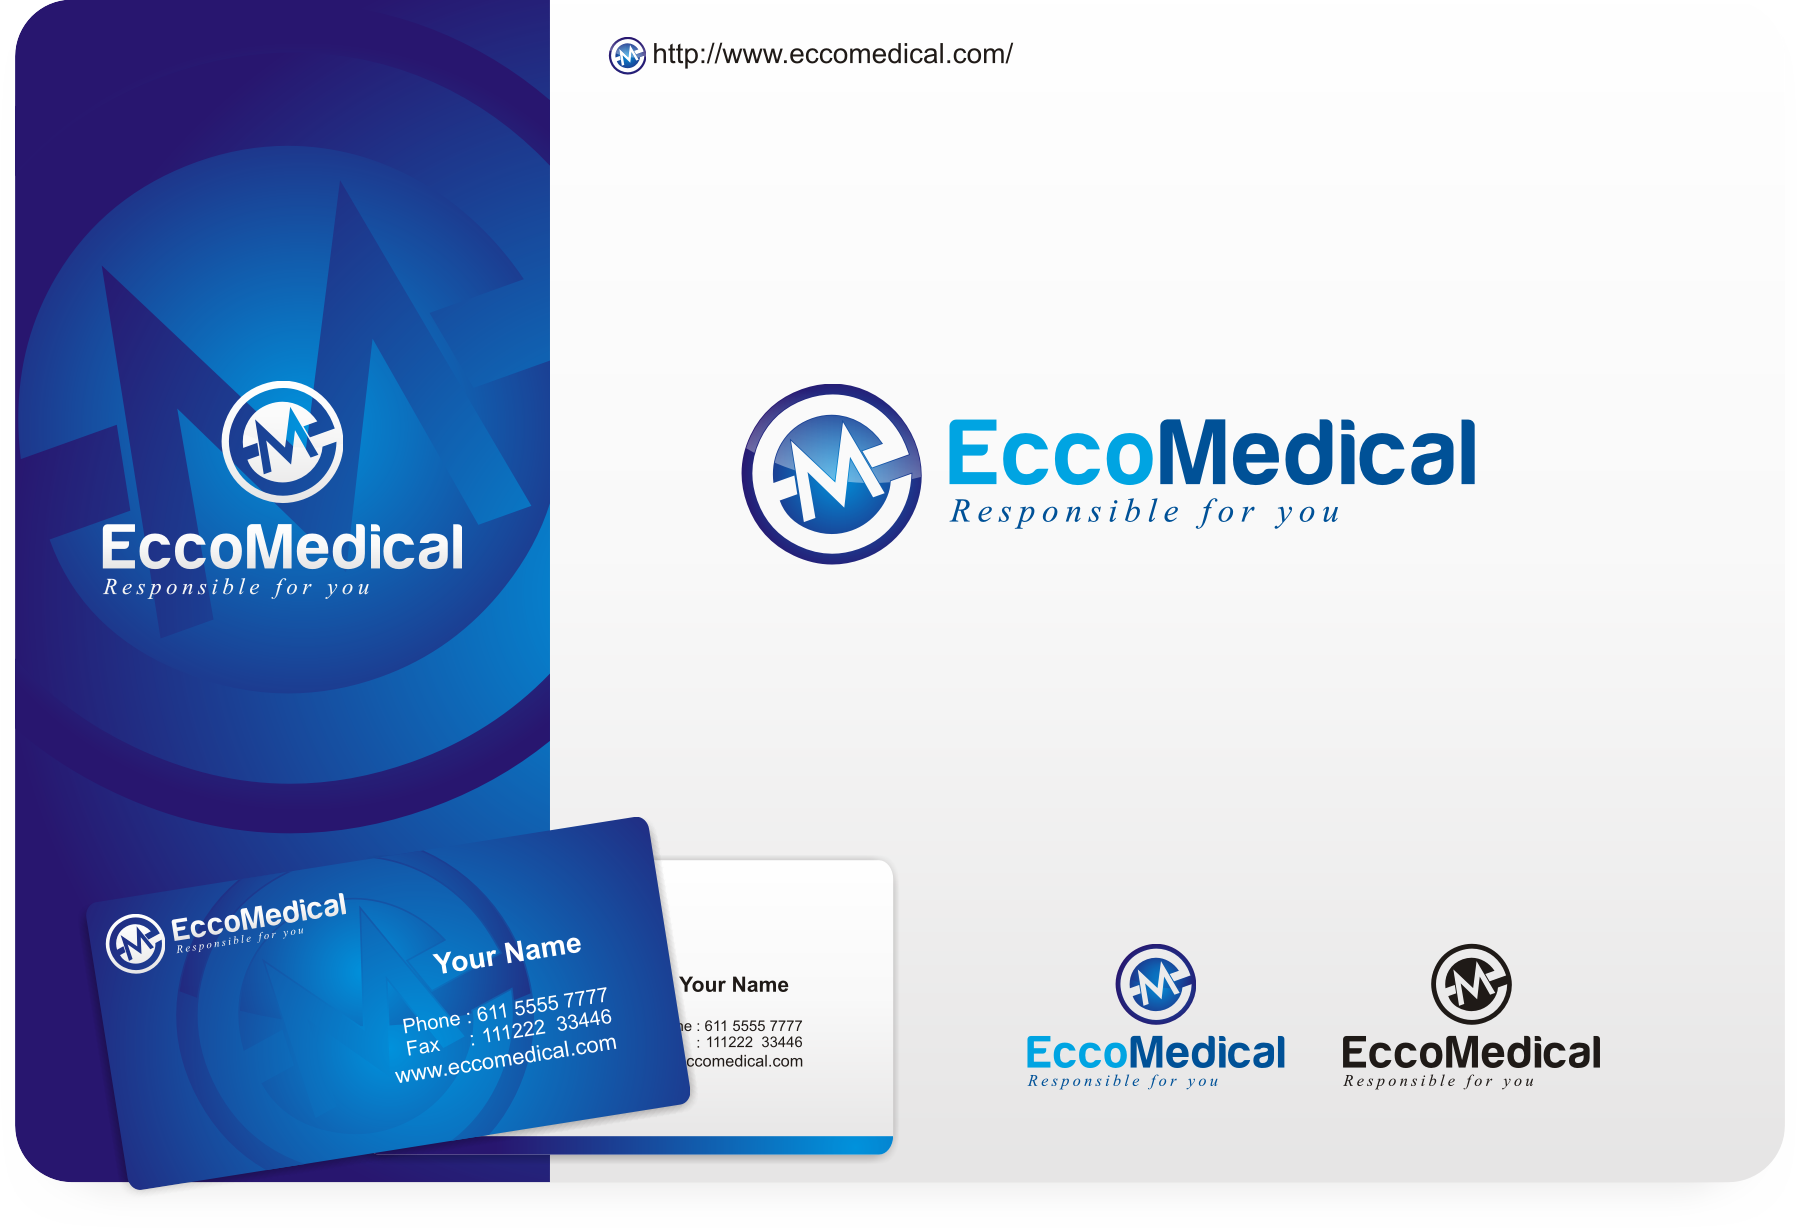 Medical Agency Needs New Logo - 100% Guaranteed Contest!